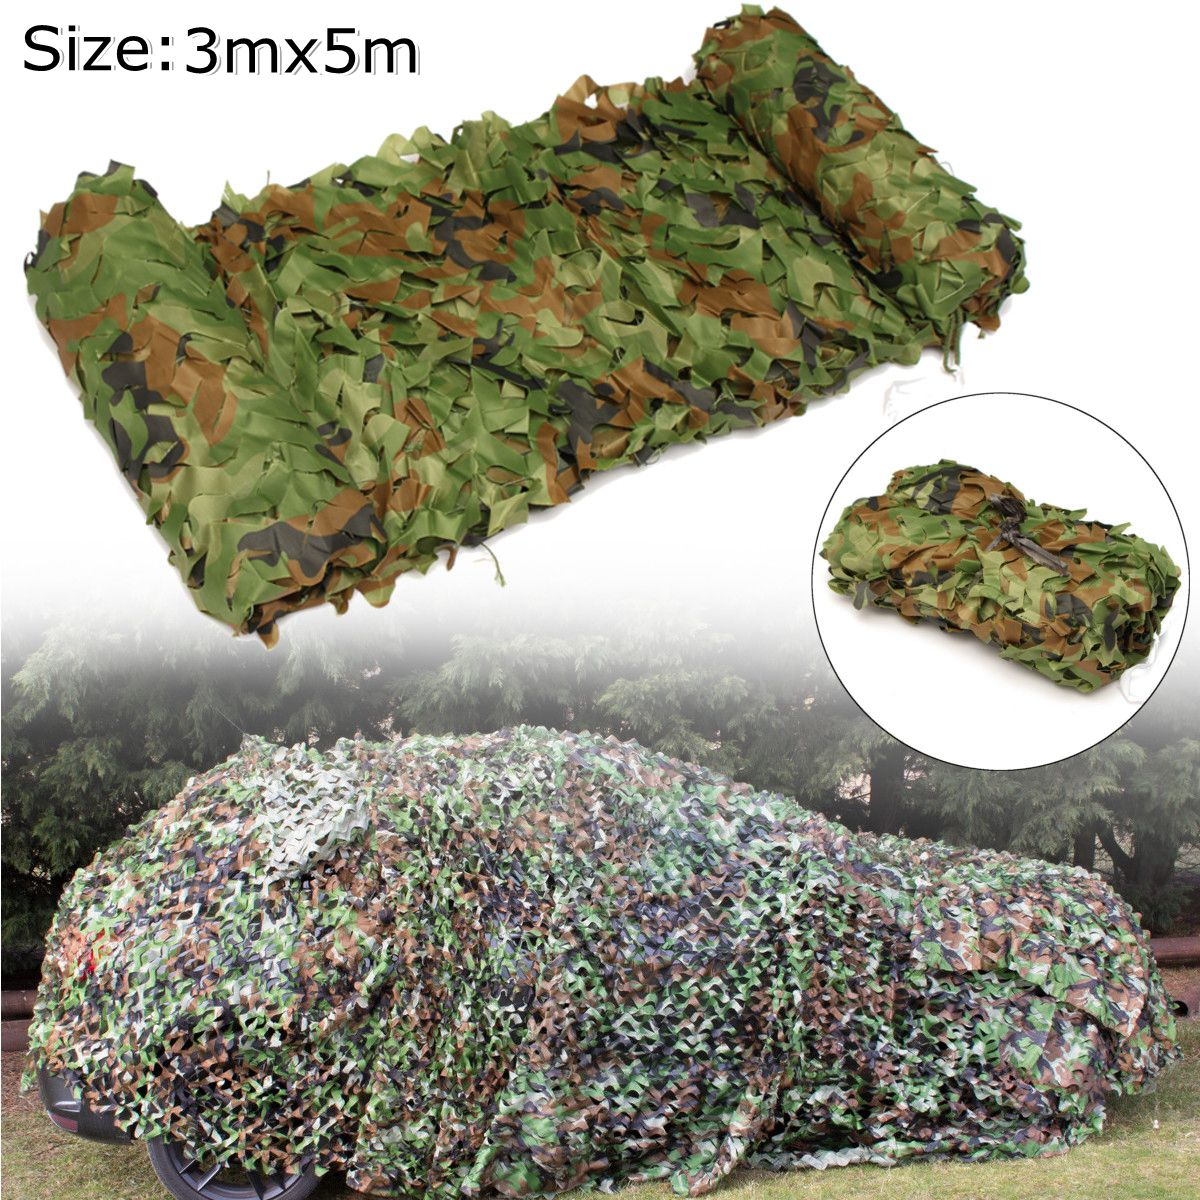 3 x 5m Hunting Camping Outdoor Desert Woodlands Blinds Army Military Camouflage Camo Net Sun Shelter Jungle Blinds Car Covers3 x 5m Hunting Camping Outdoor Desert Woodlands Blinds Army Military Camouflage Camo Net Sun Shelter Jungle Blinds Car Covers